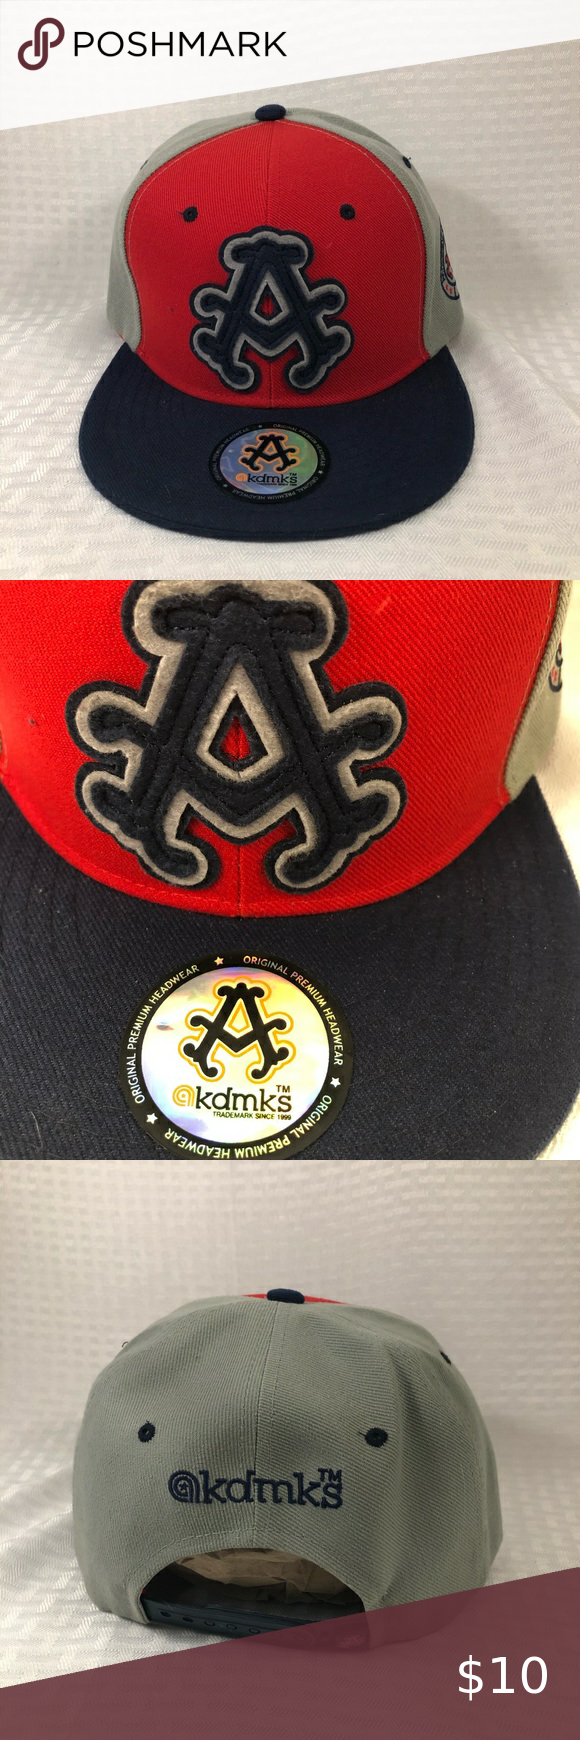 New Akademiks SnapBack Cap Baseball Hat Red, Blue New Akademiks SnapBack Cap Baseball Hat Red, Blue and Gray Accessories Hats